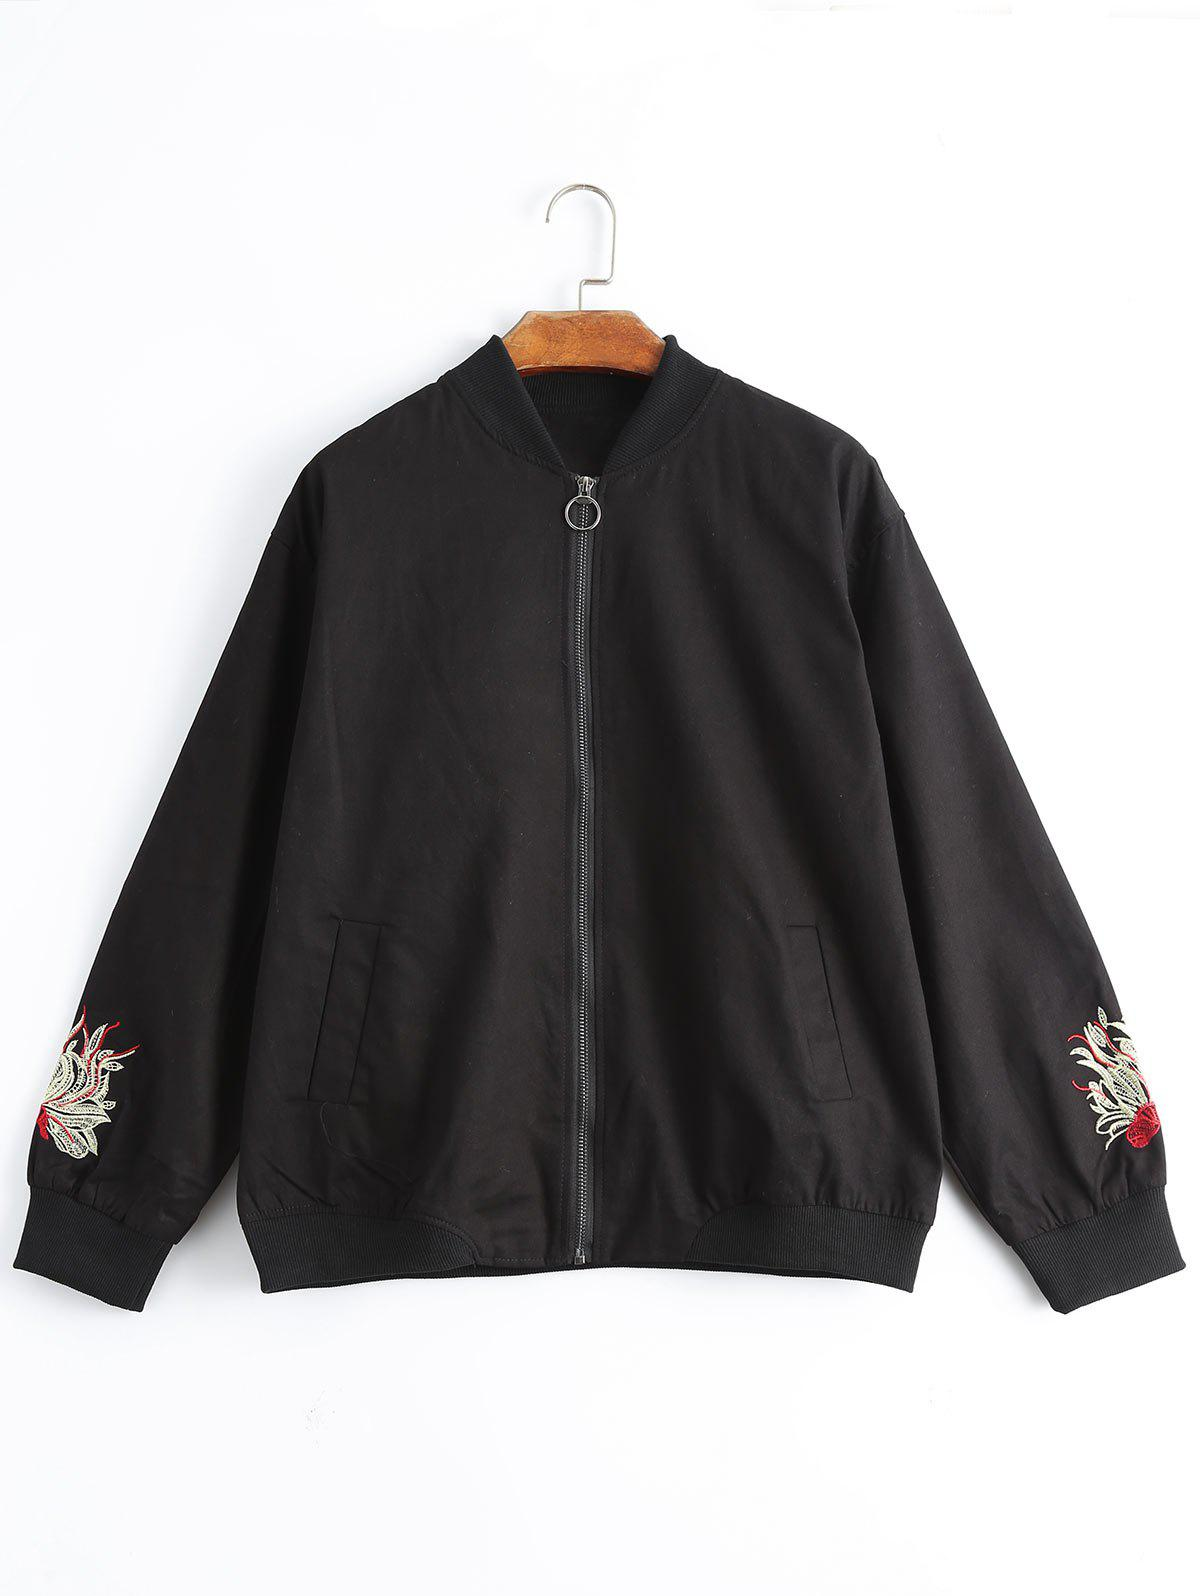 Plus size floral embroidered jacket black xl in